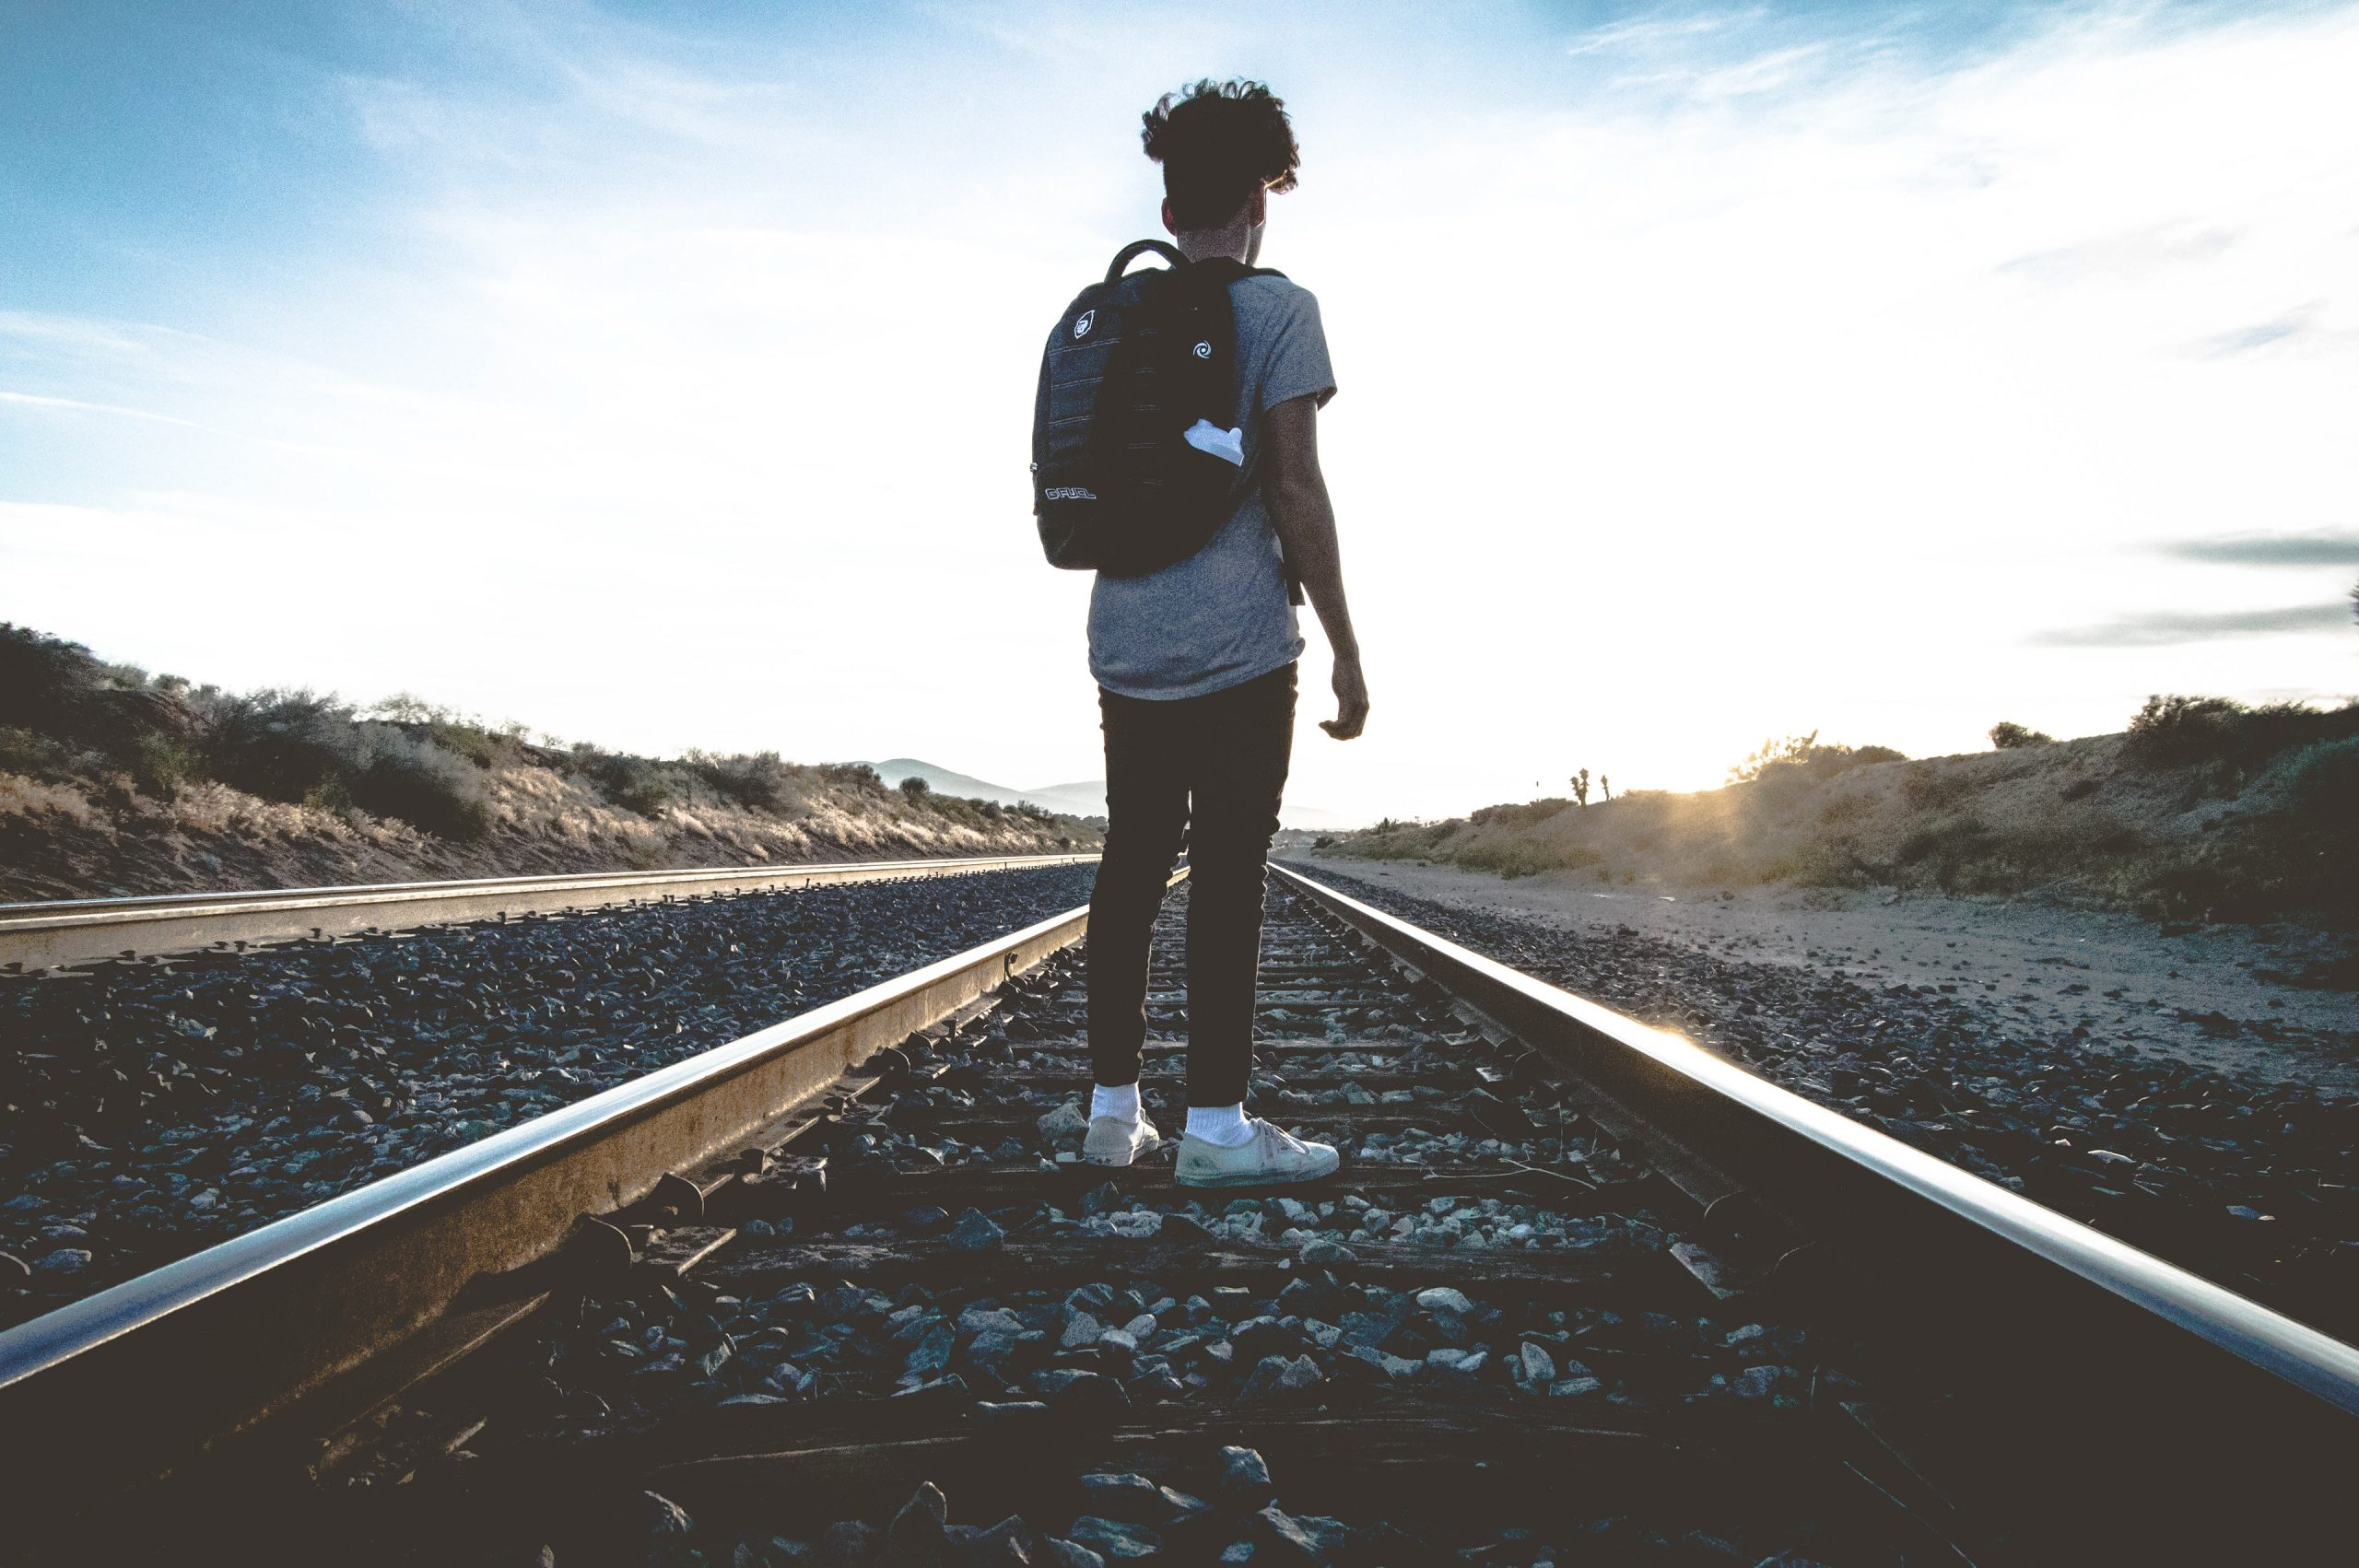 man on railway tracks - resilience - who's got what it takes? - Petros UK